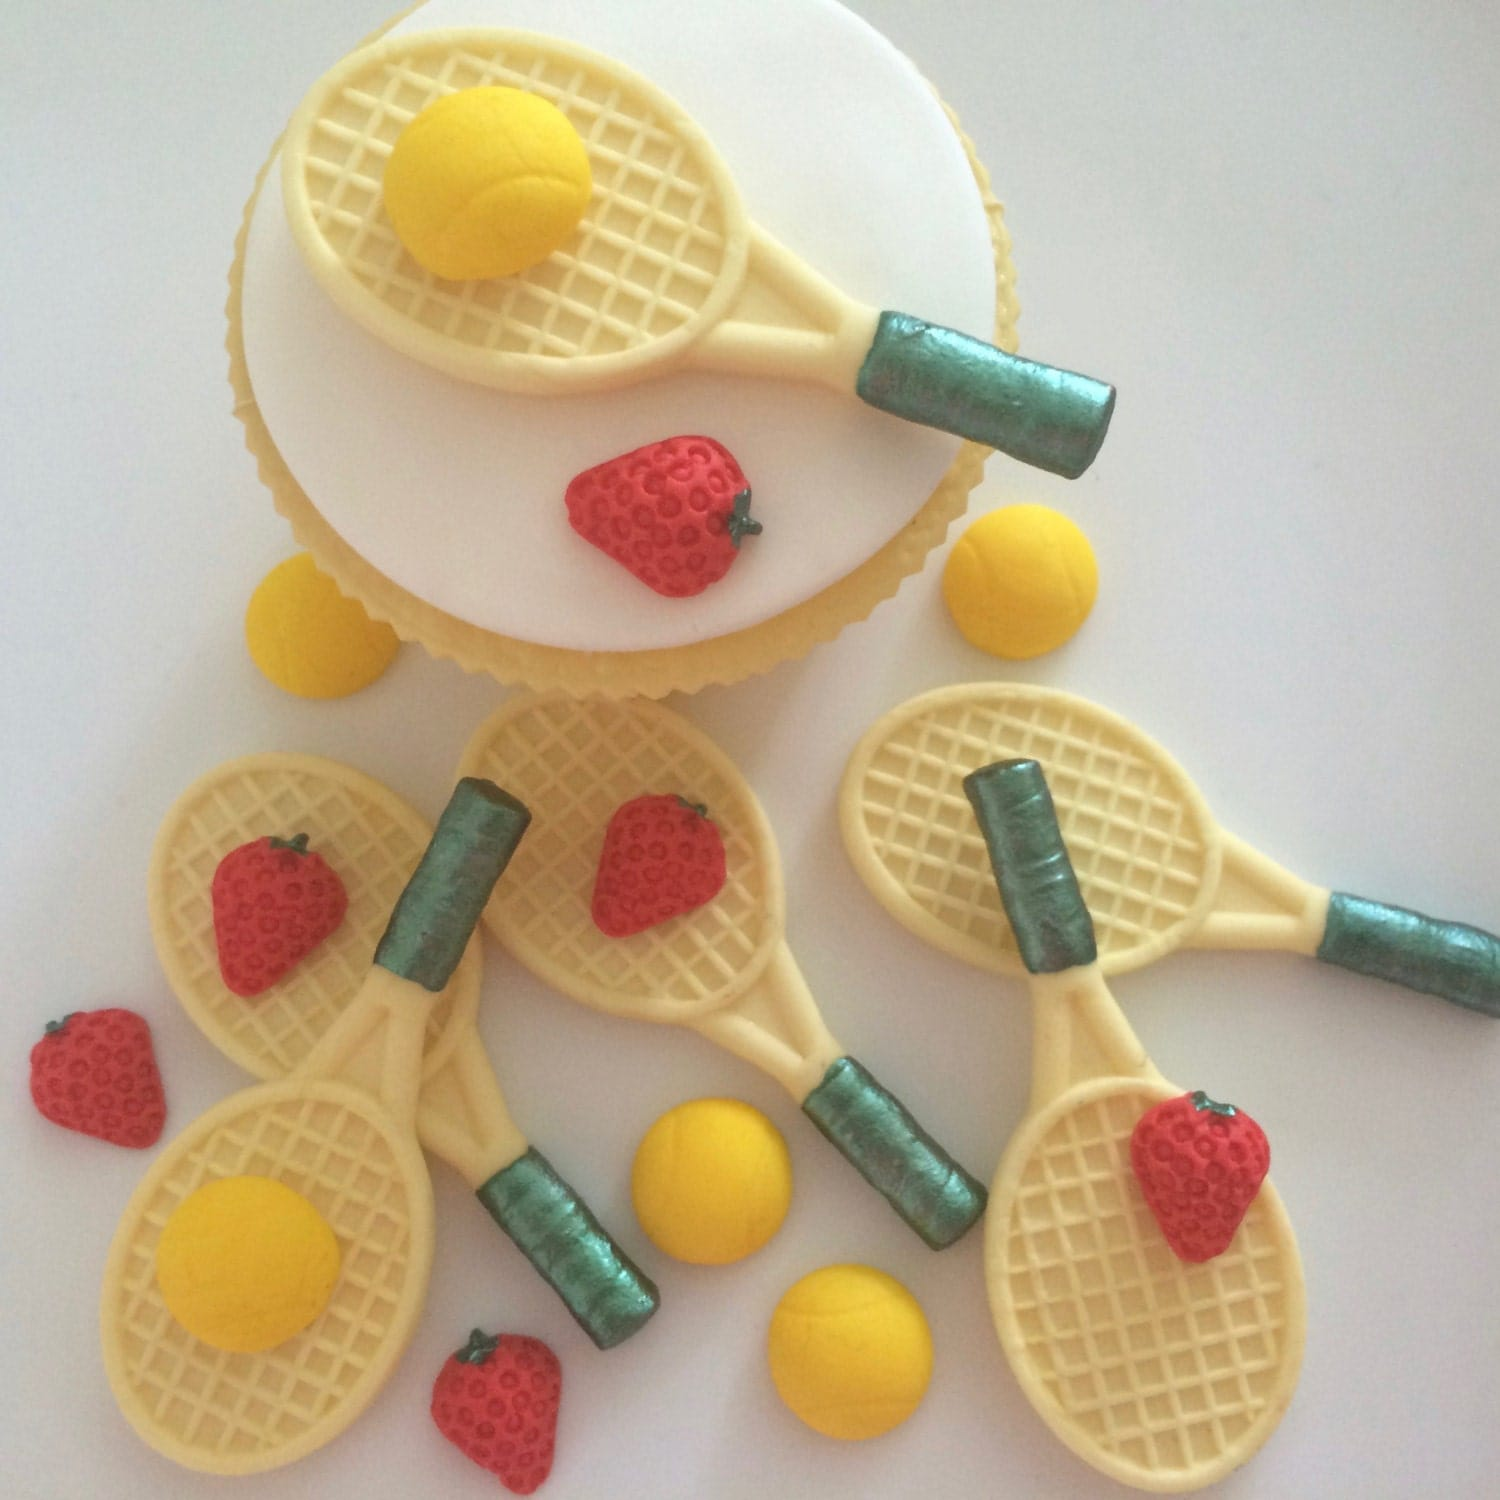 Tennis Cake Decorations Uk : 6 TENNIS RACKETS edible sugar paste cake decorations toppers